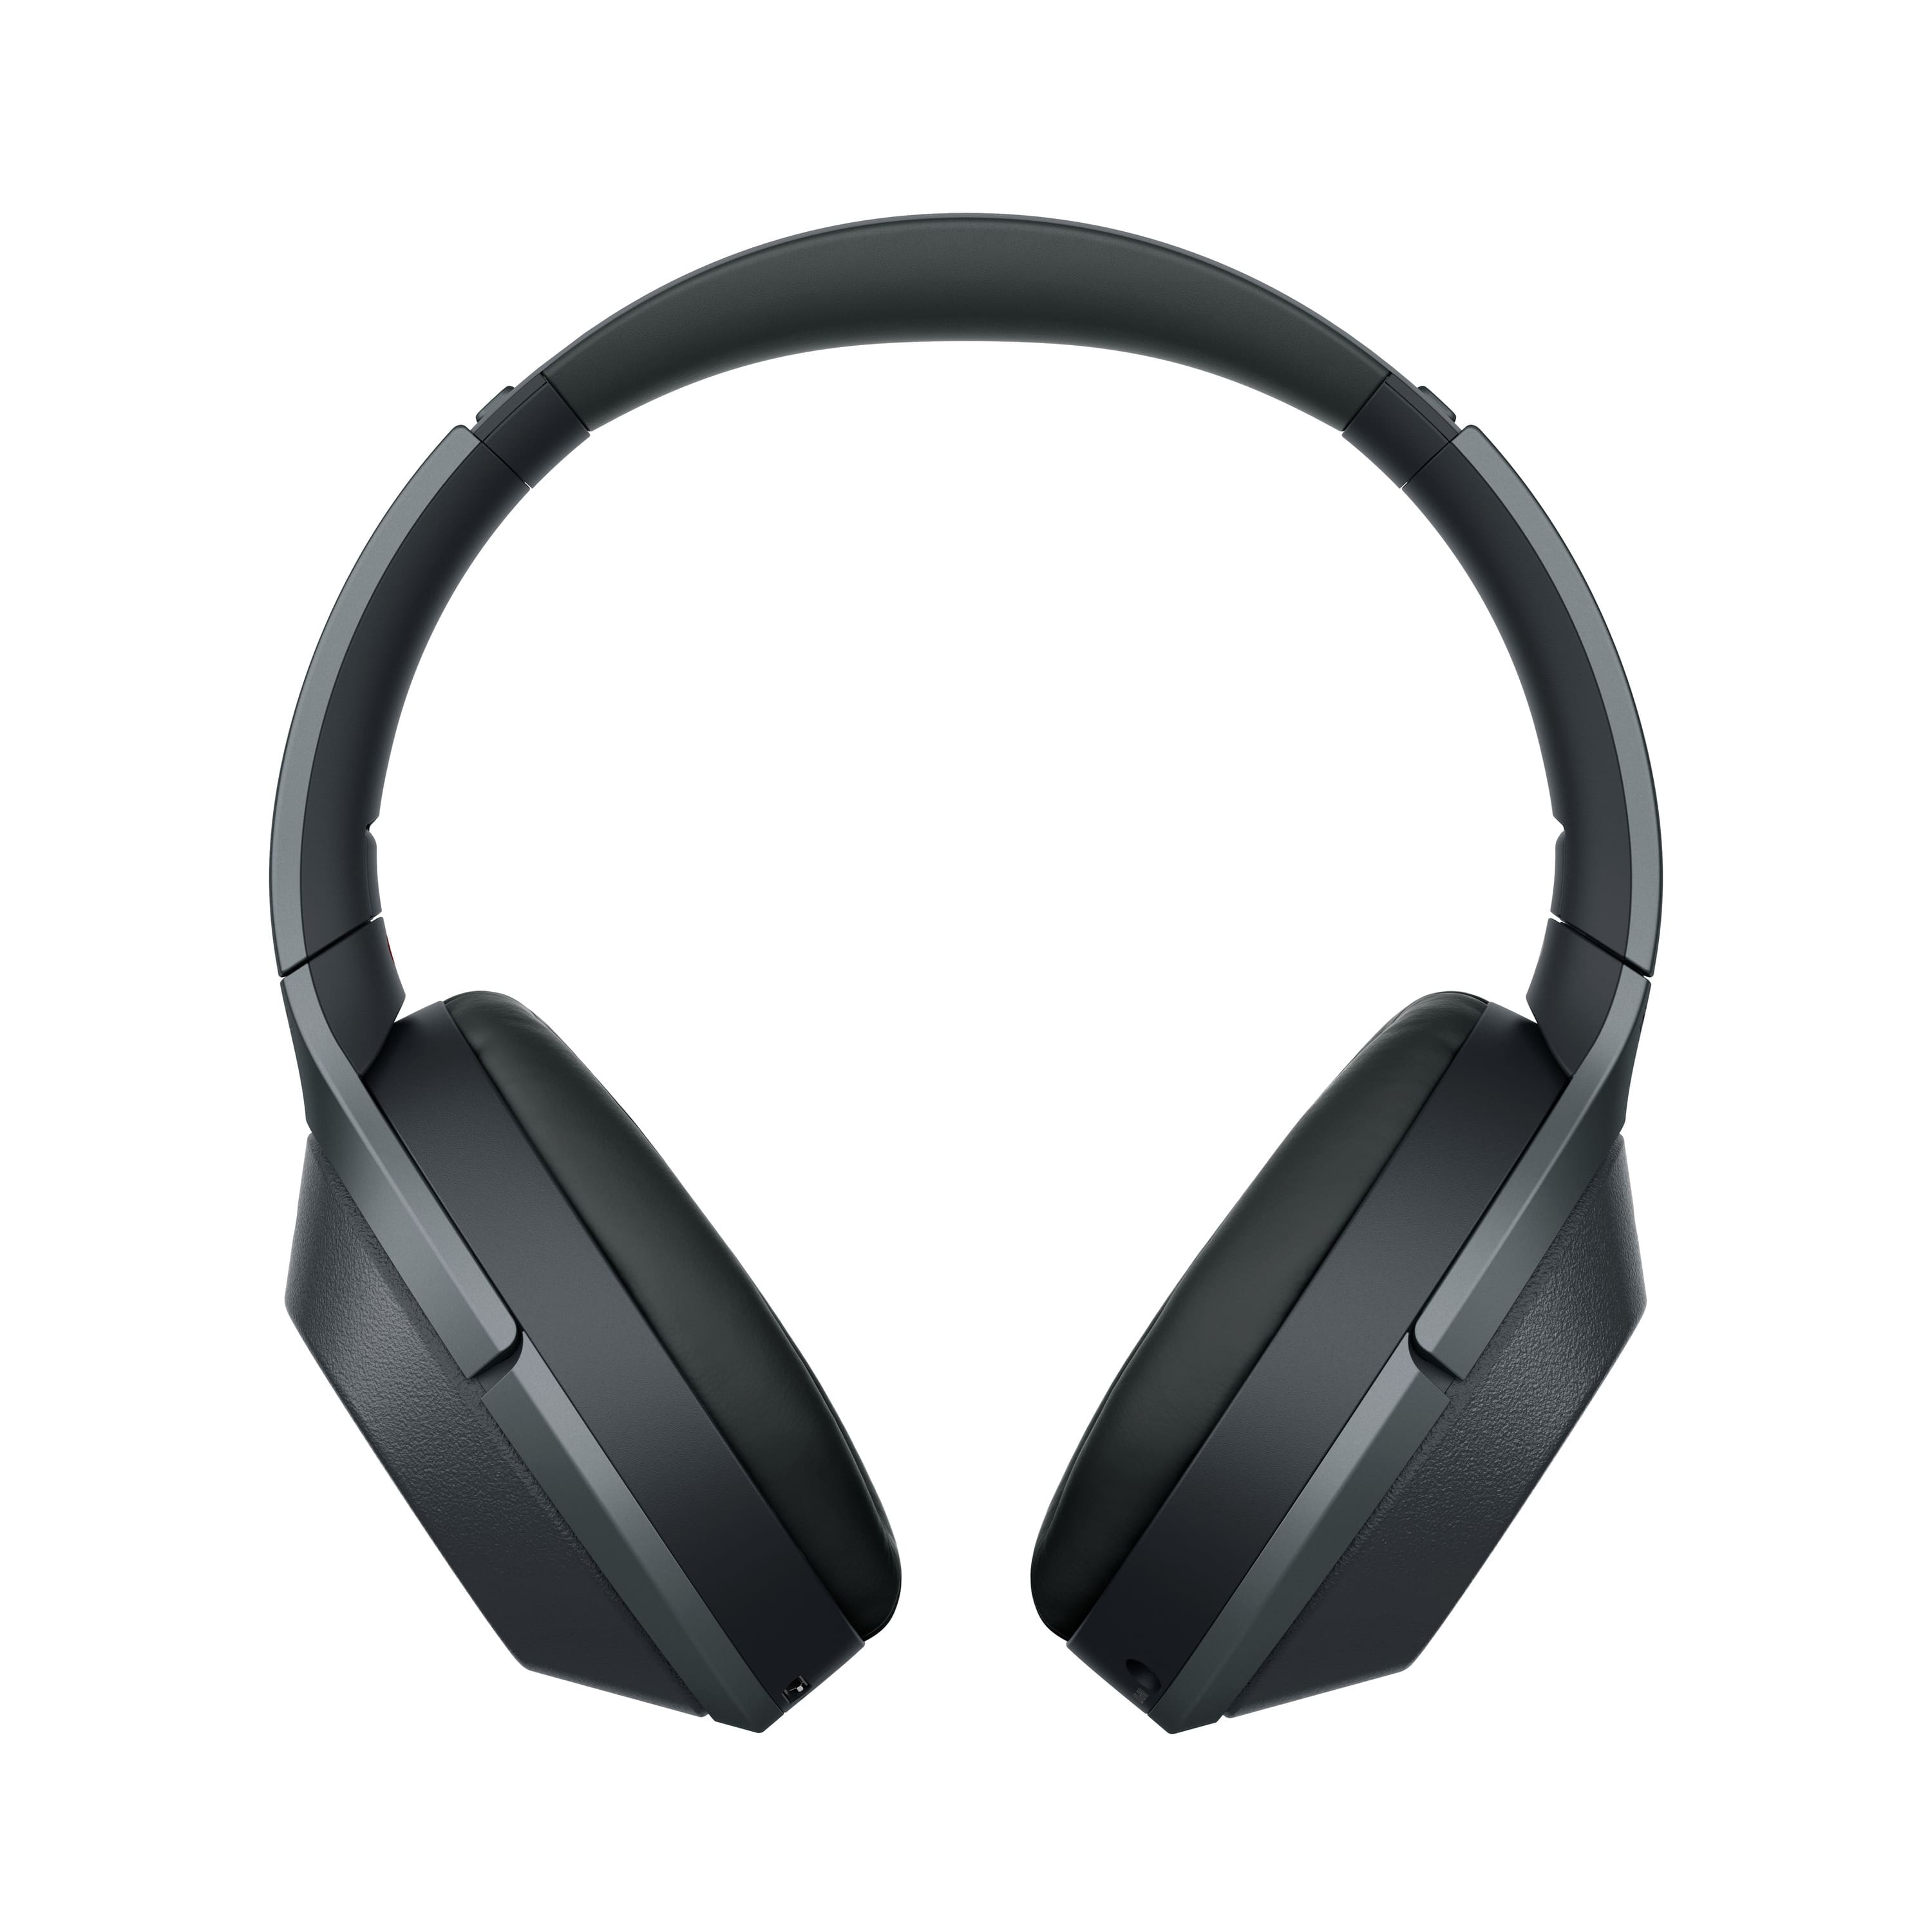 46213a36072 Sony WH-1000XM2 Wireless Bluetooth Noise Cancelling Hi-Fi Headphones  (Manufacturer Refurbished) $199.99